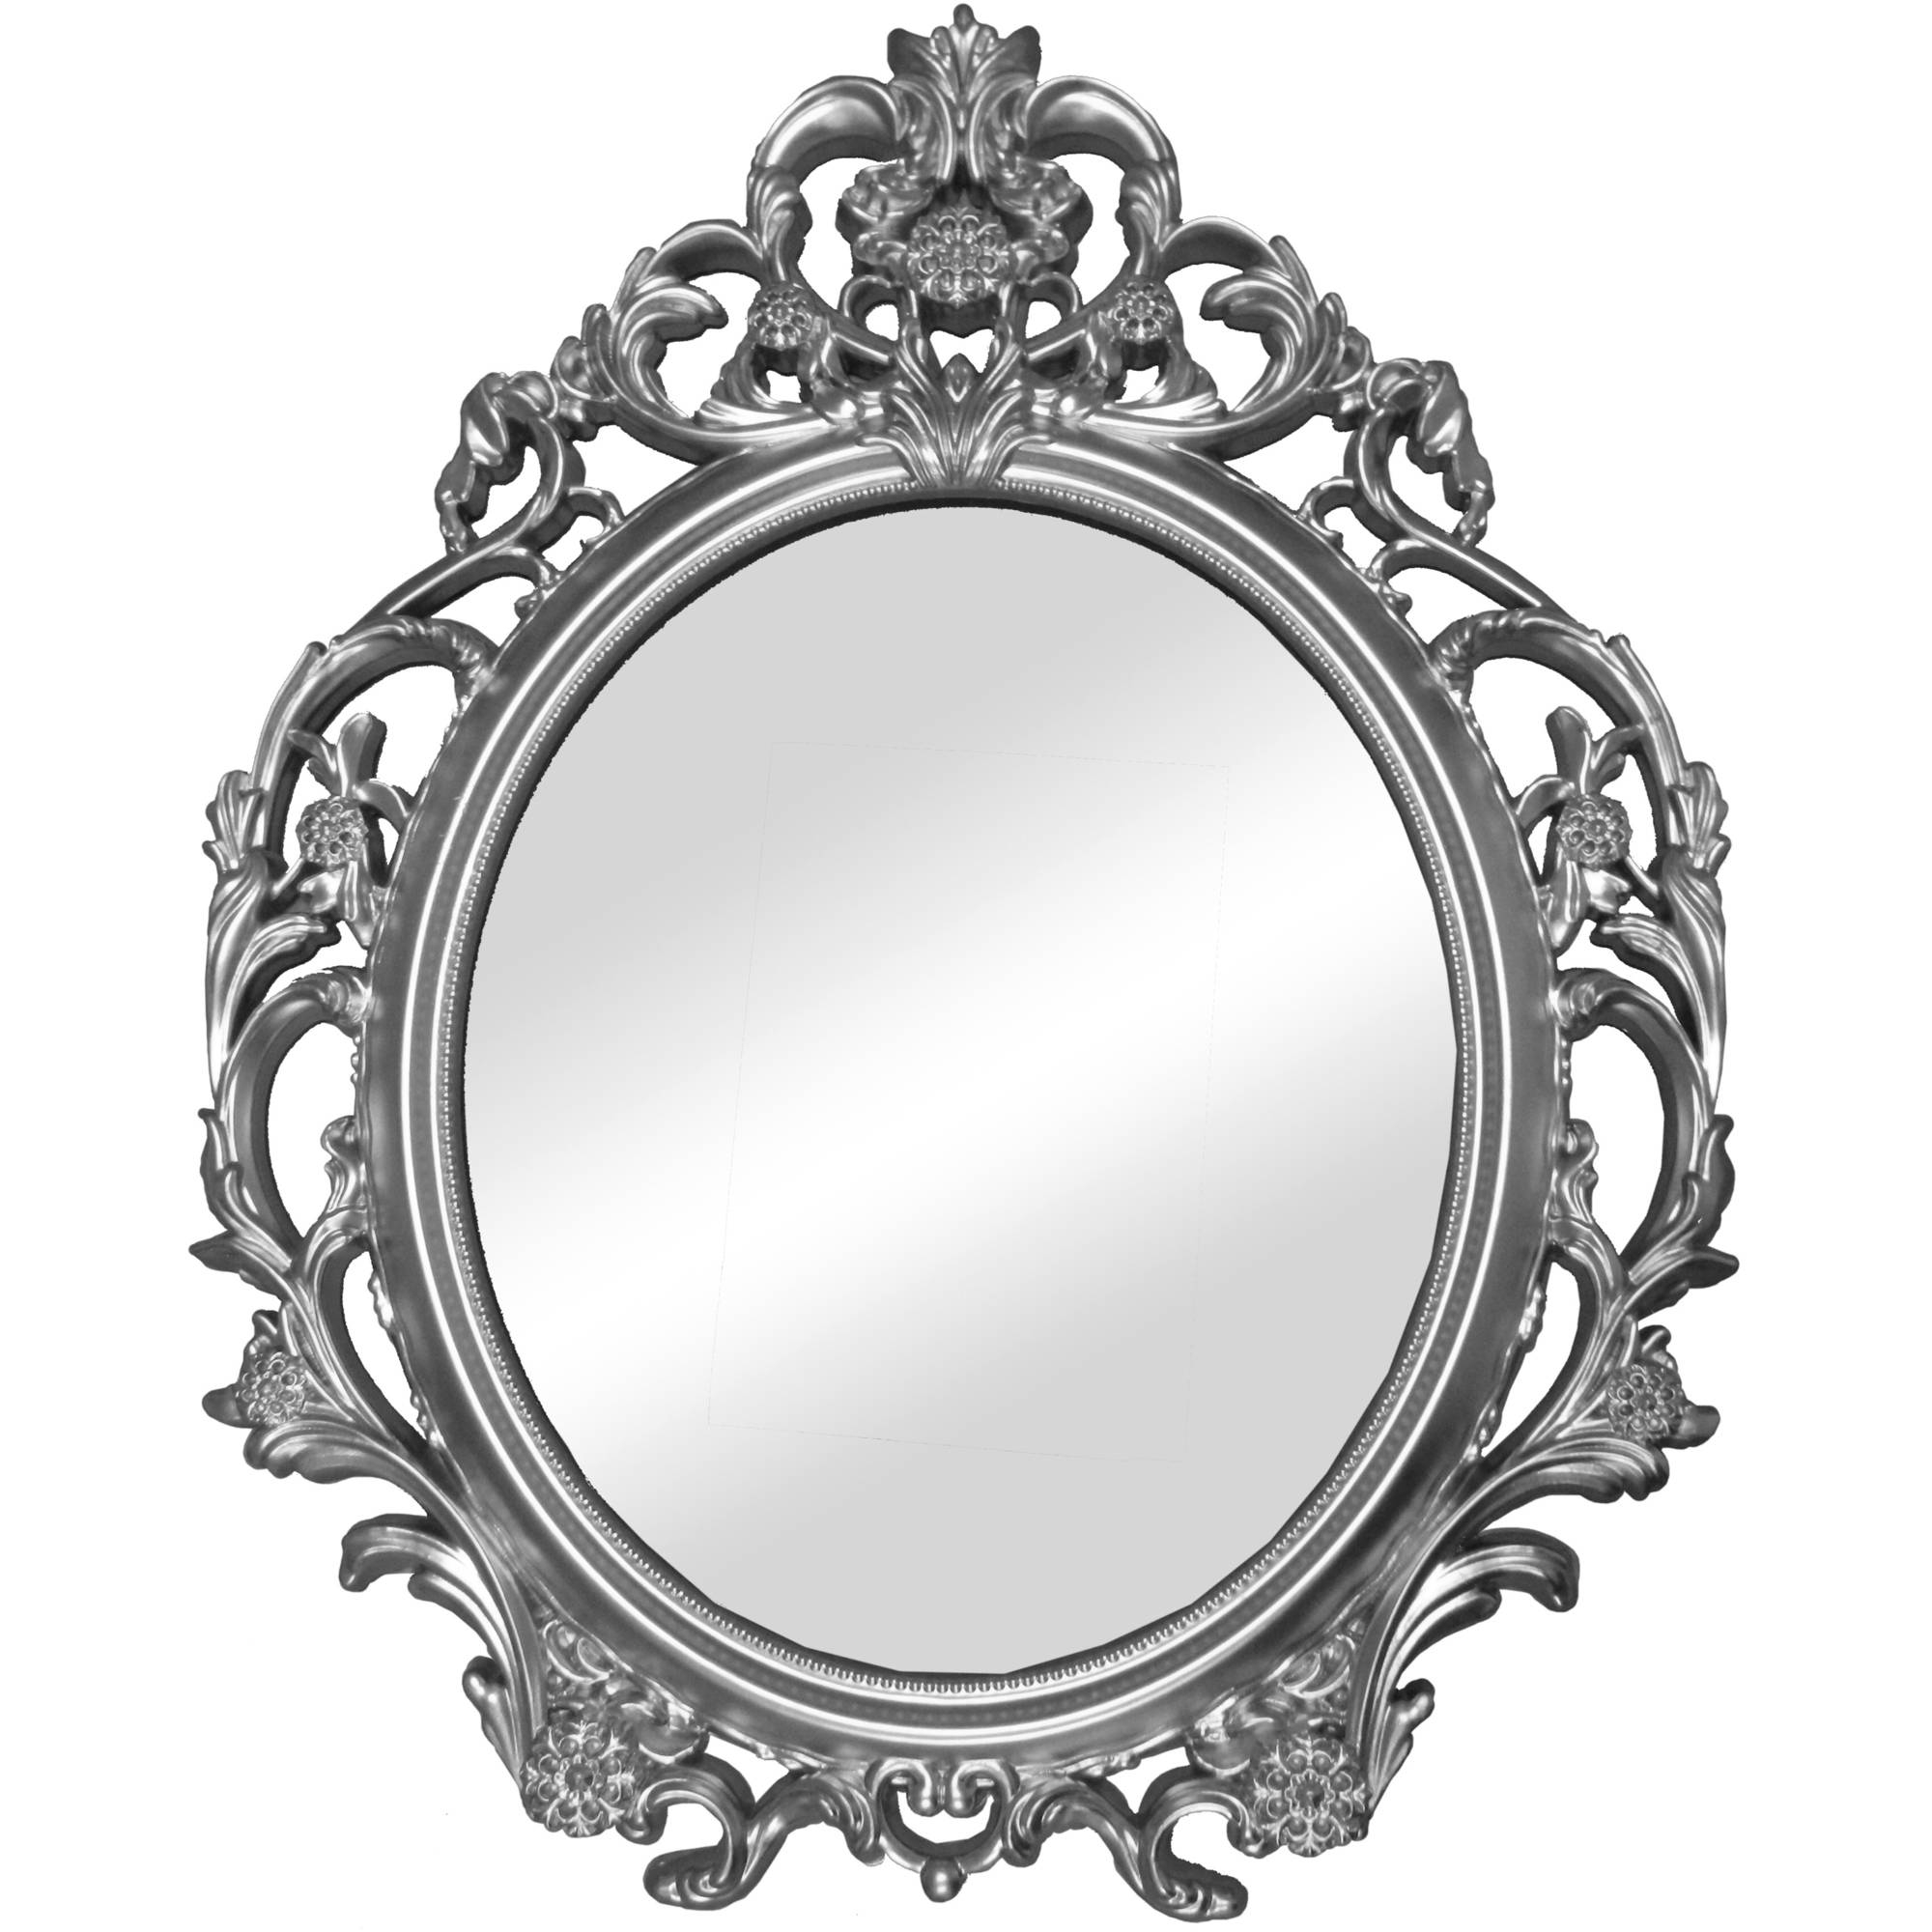 Better Homes And Gardens Baroque Wall Mirror Walmart Intended For Baroque Mirror Black (Image 6 of 15)